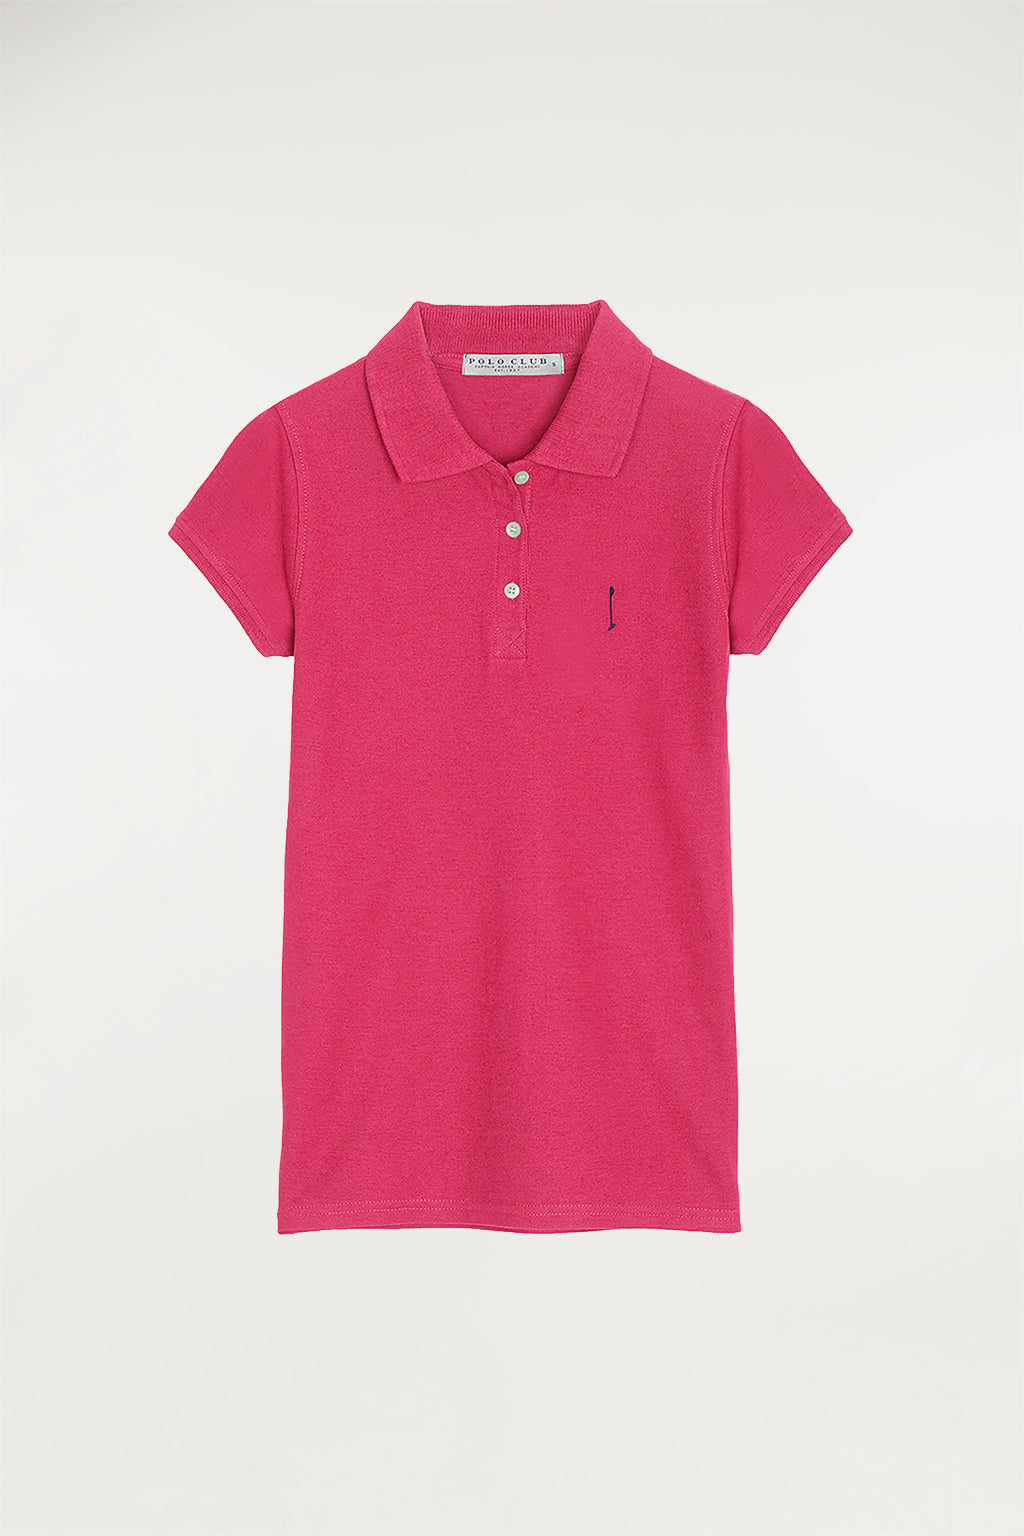 Poloshirt fuchsiapink mit Stickerei Custom fit